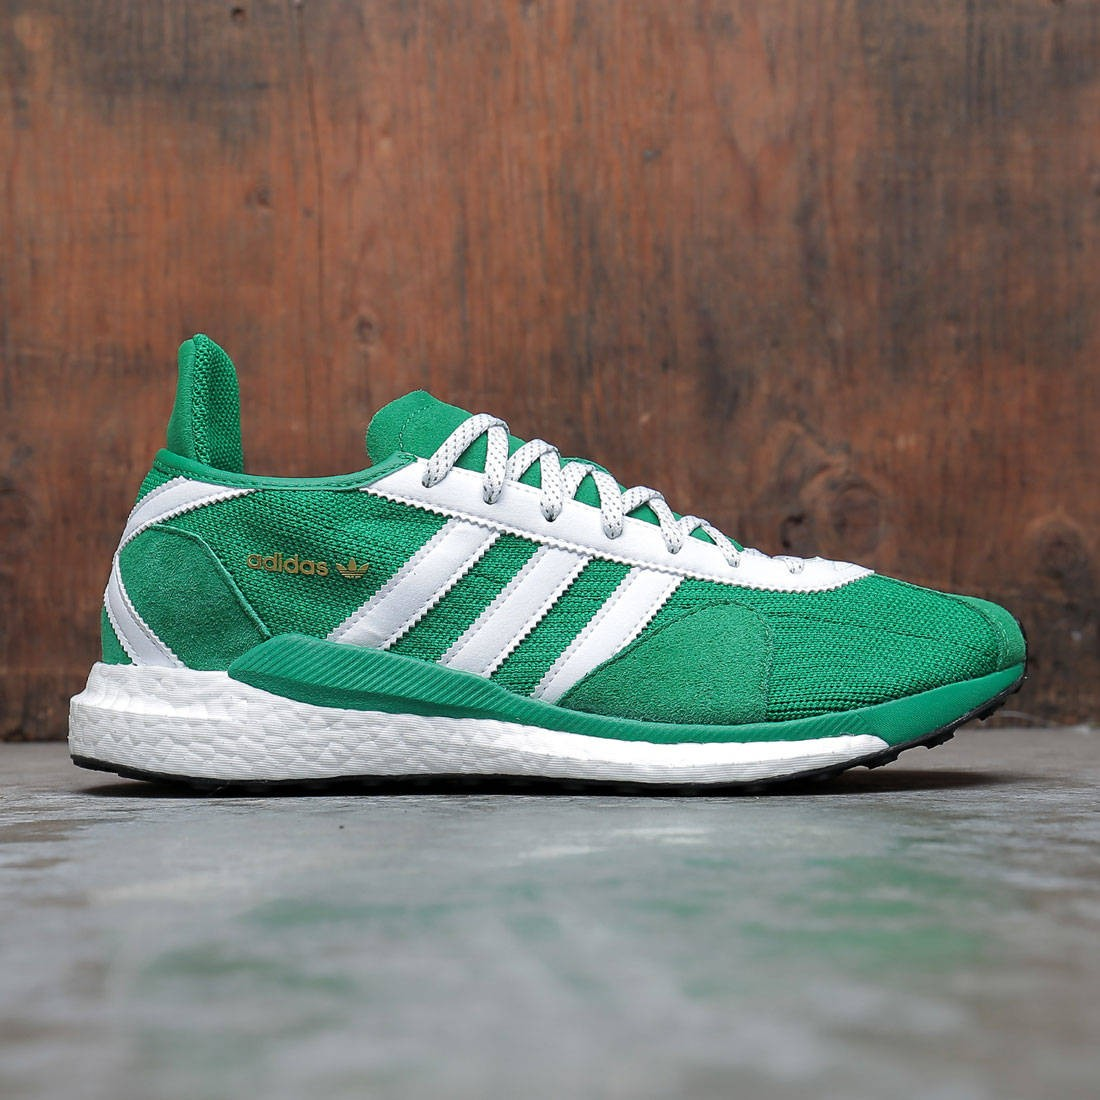 Adidas x Human Made Men Tokio Solar (green)